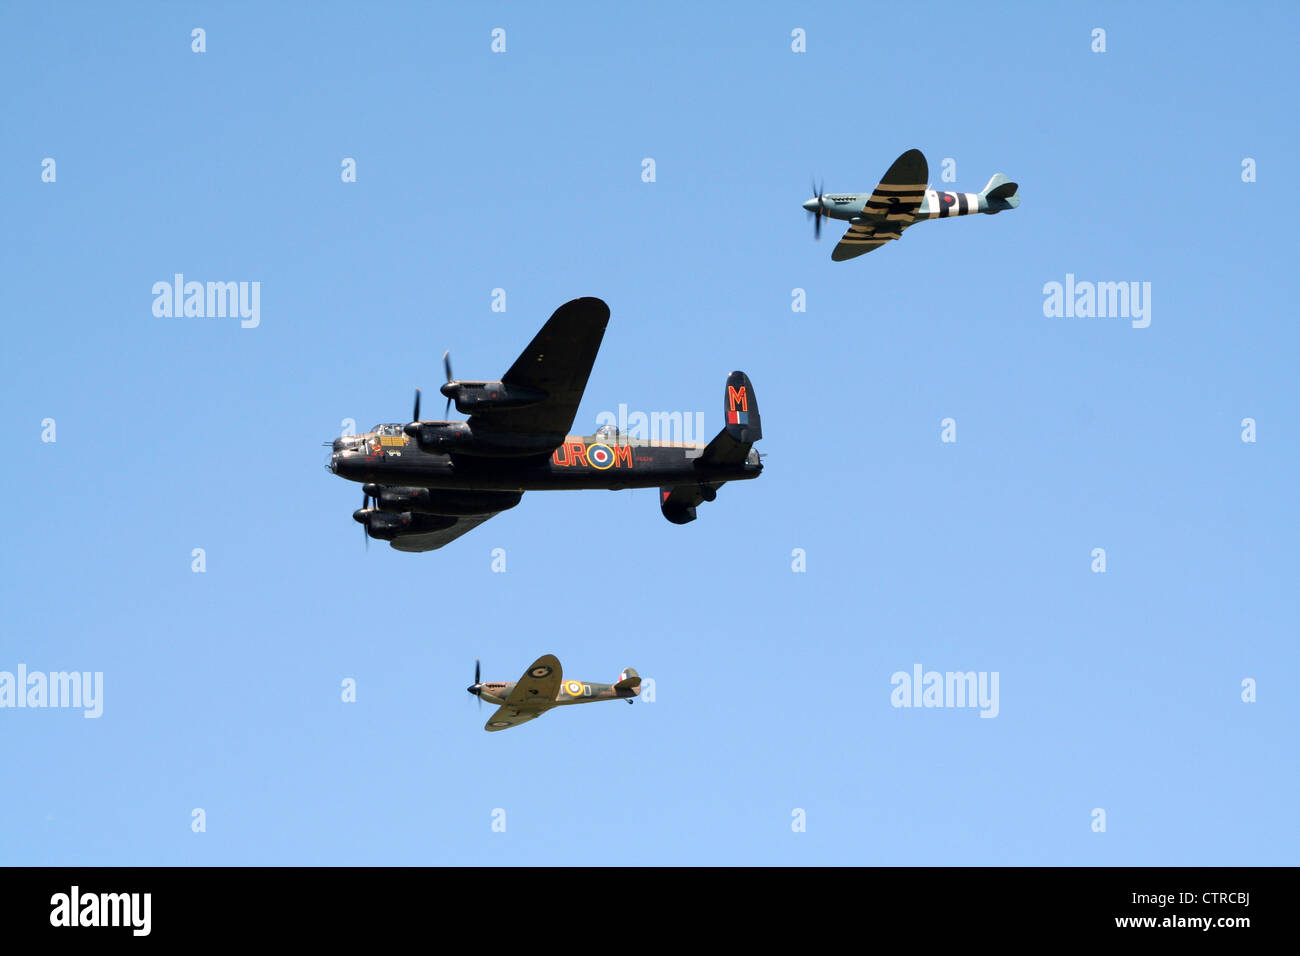 Historical WW2 planes flyby - Stock Image